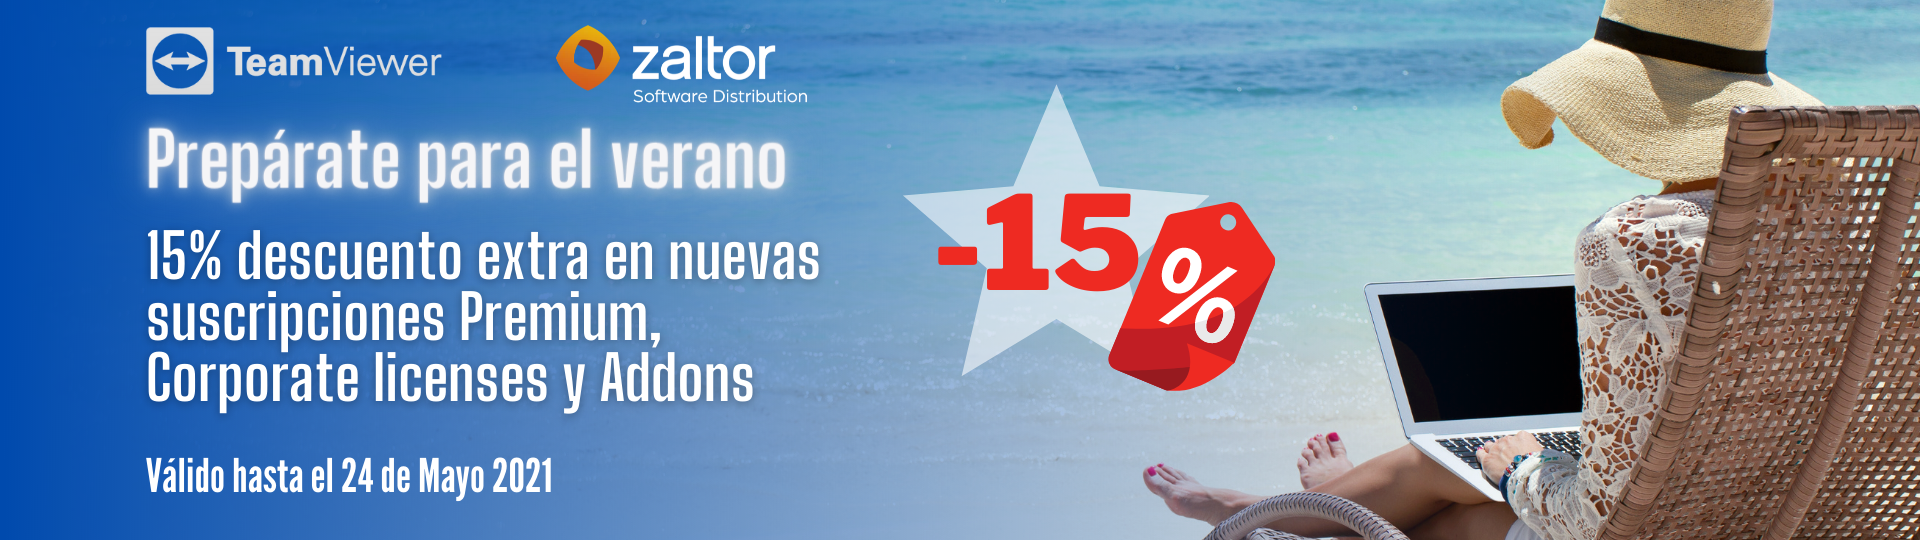 promo descuento teamviewer mayo 2021